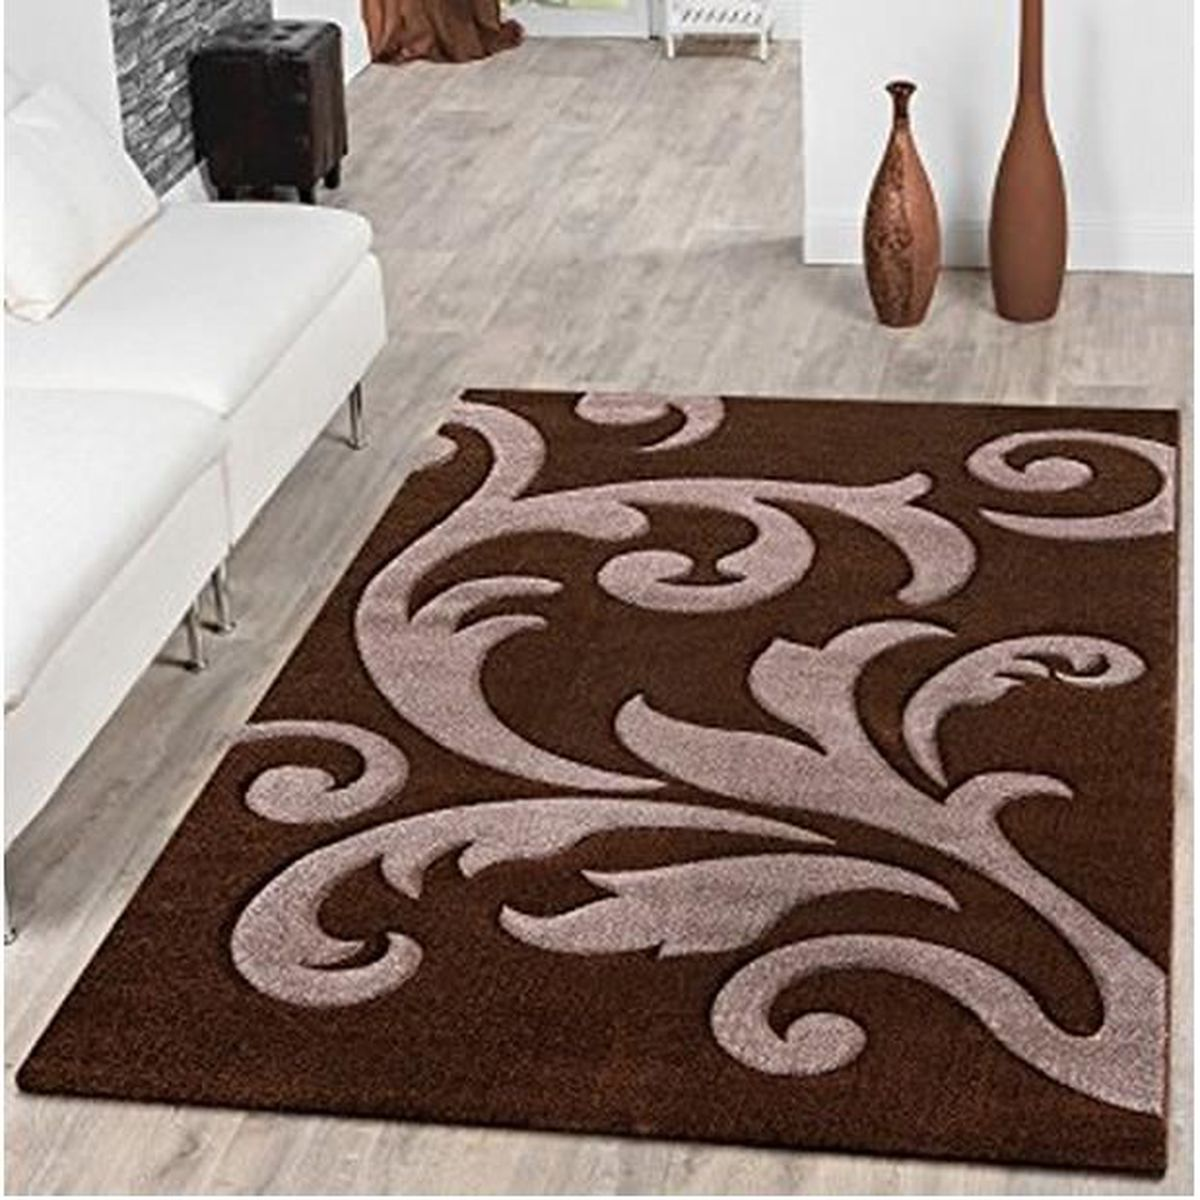 tapis salon tapis levante moderne avec motif floral marron. Black Bedroom Furniture Sets. Home Design Ideas